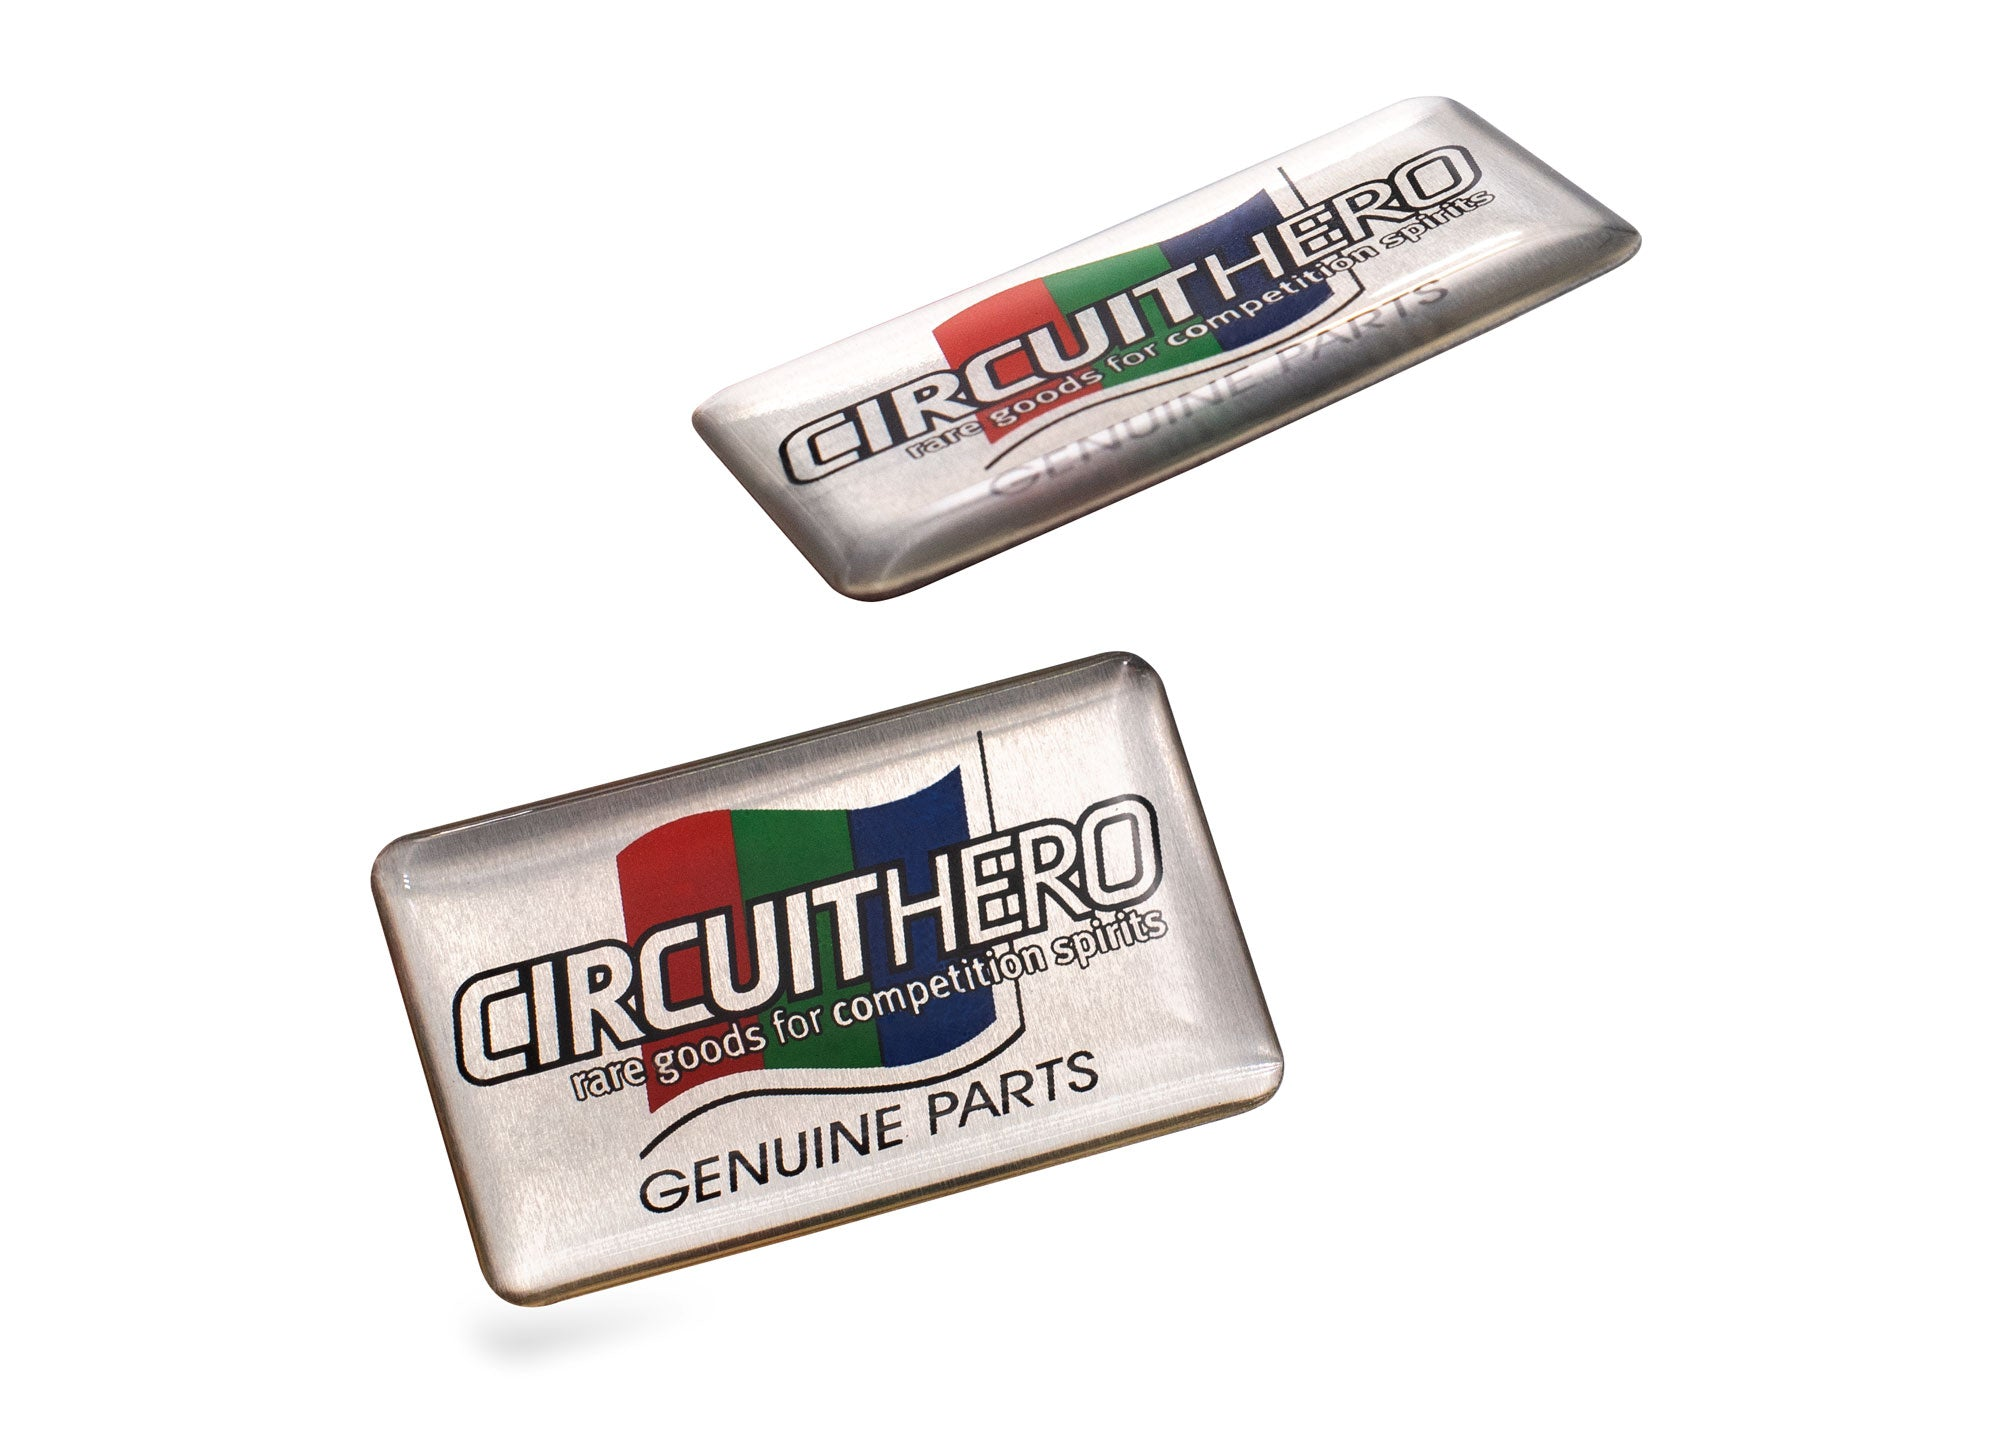 Circuit Hero Genuine Parts Badge